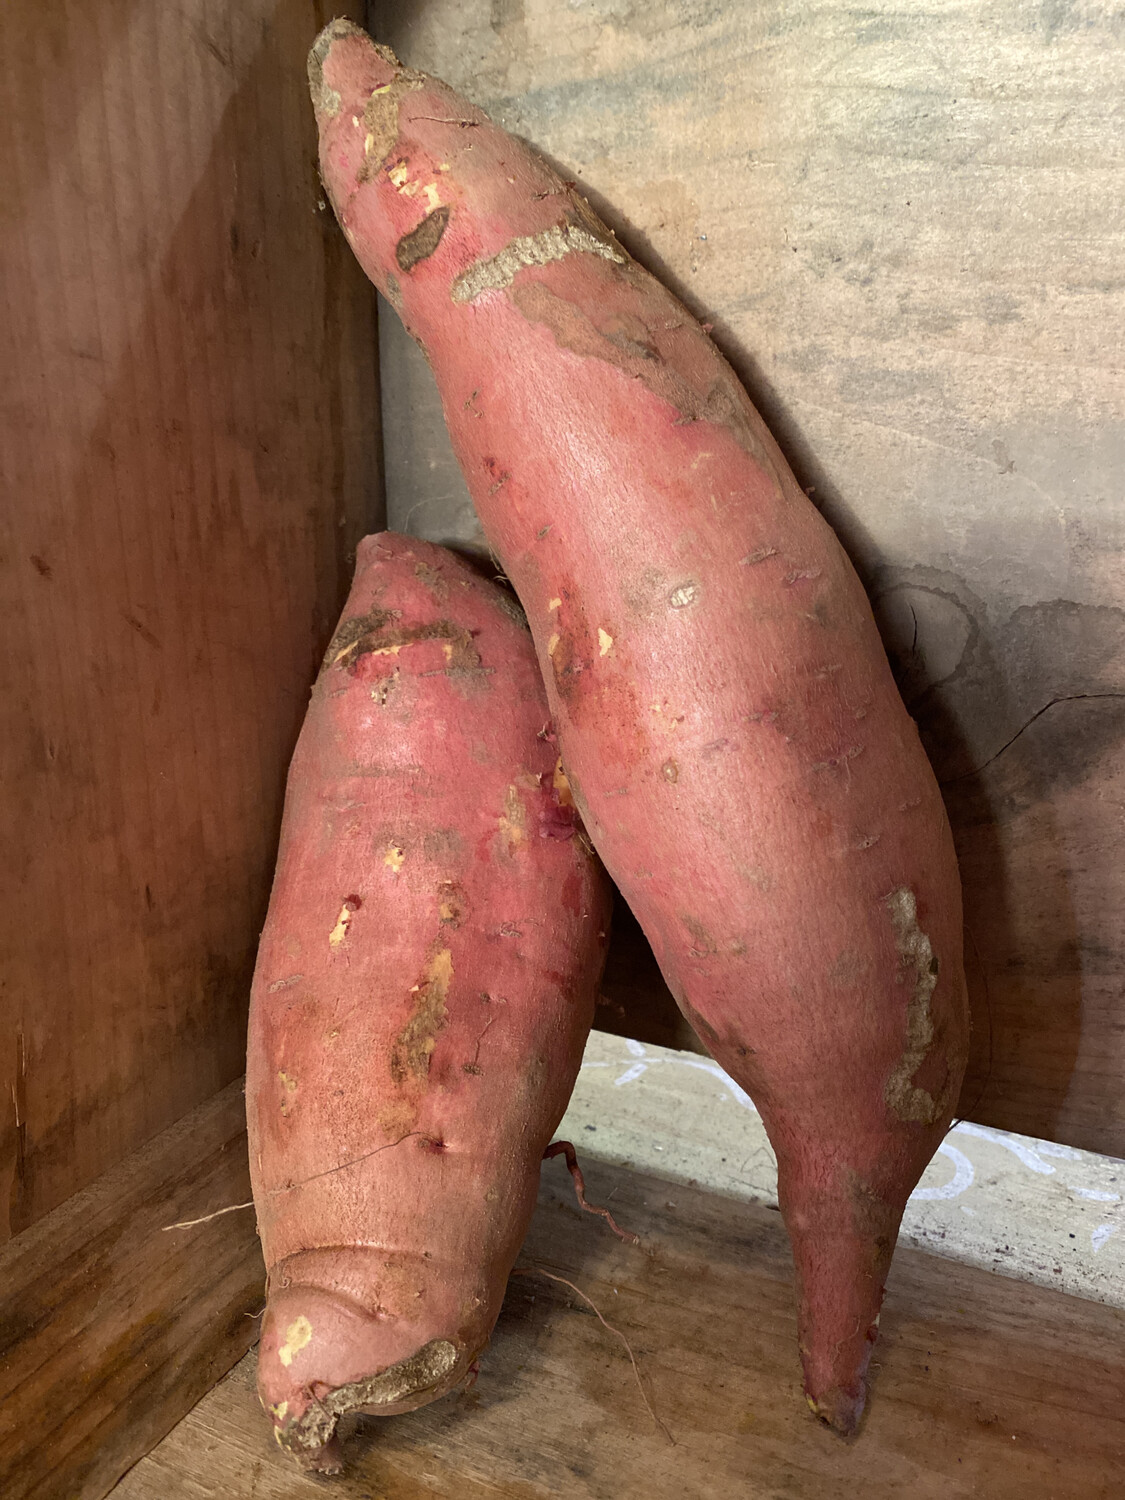 Sweet Potatoes | Tangerini's Own